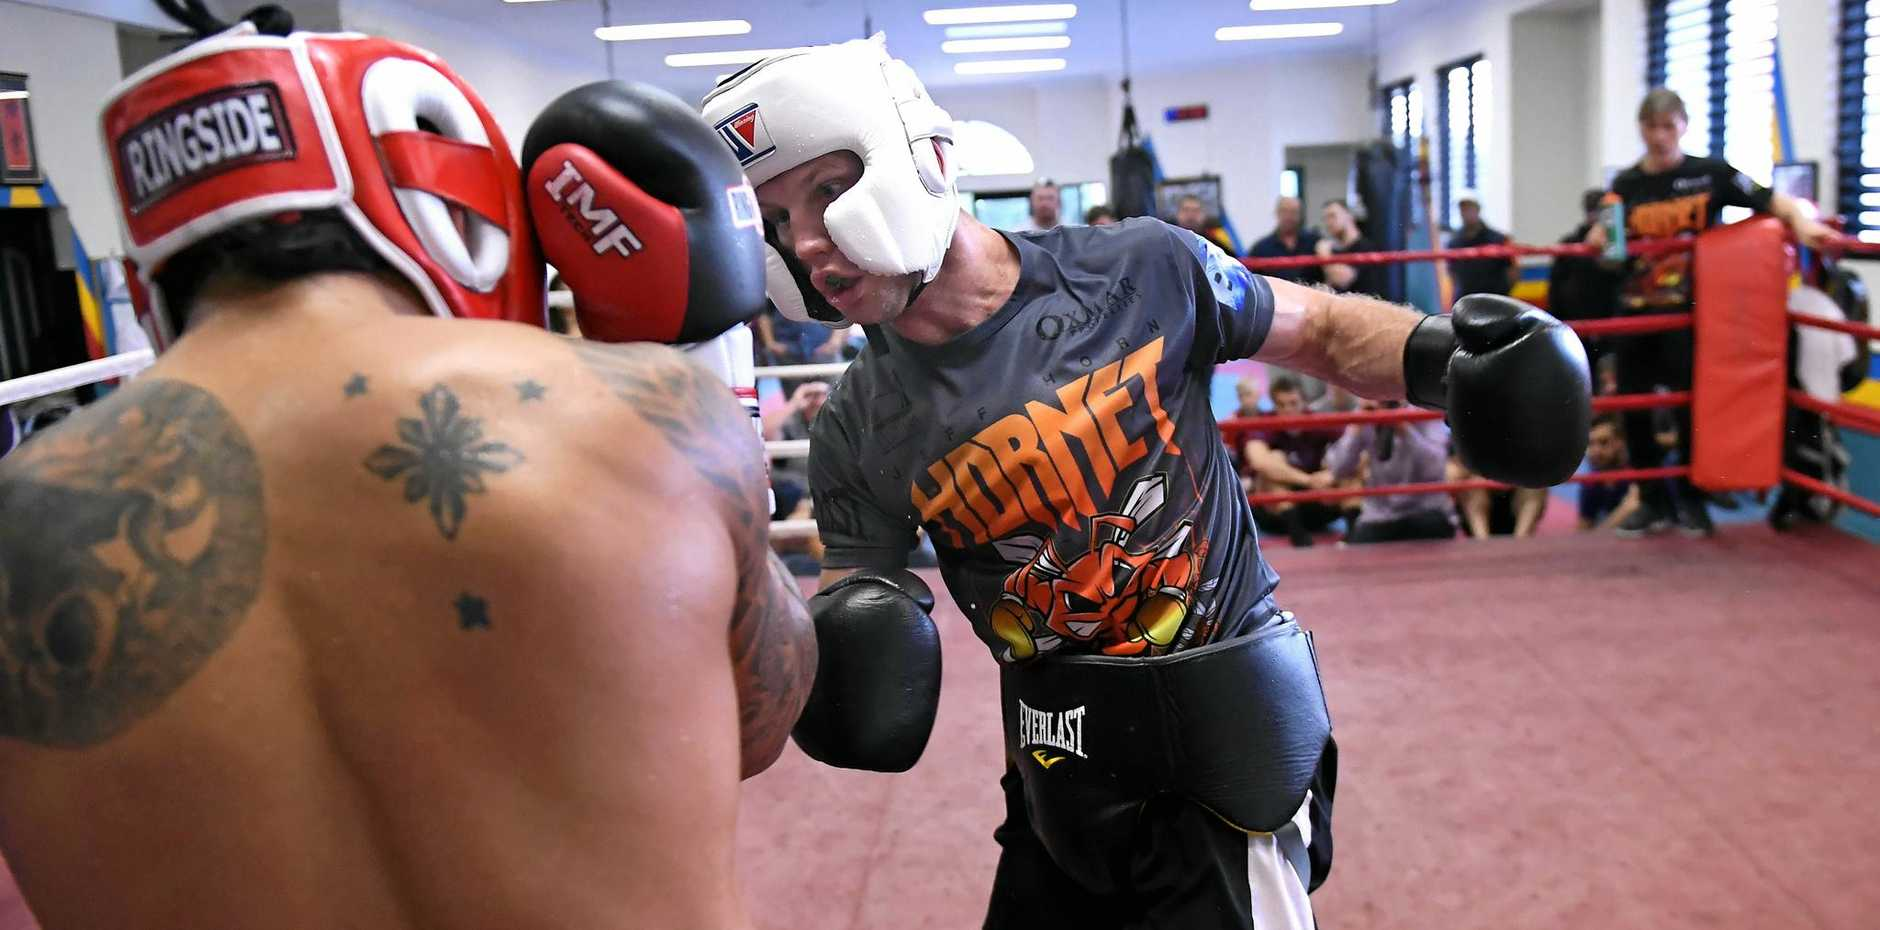 READY TO RUMBLE: Australian boxer Jeff Horn (right) throws a big left during a sparring session against Filipino light welterweight Czar Amonsot.